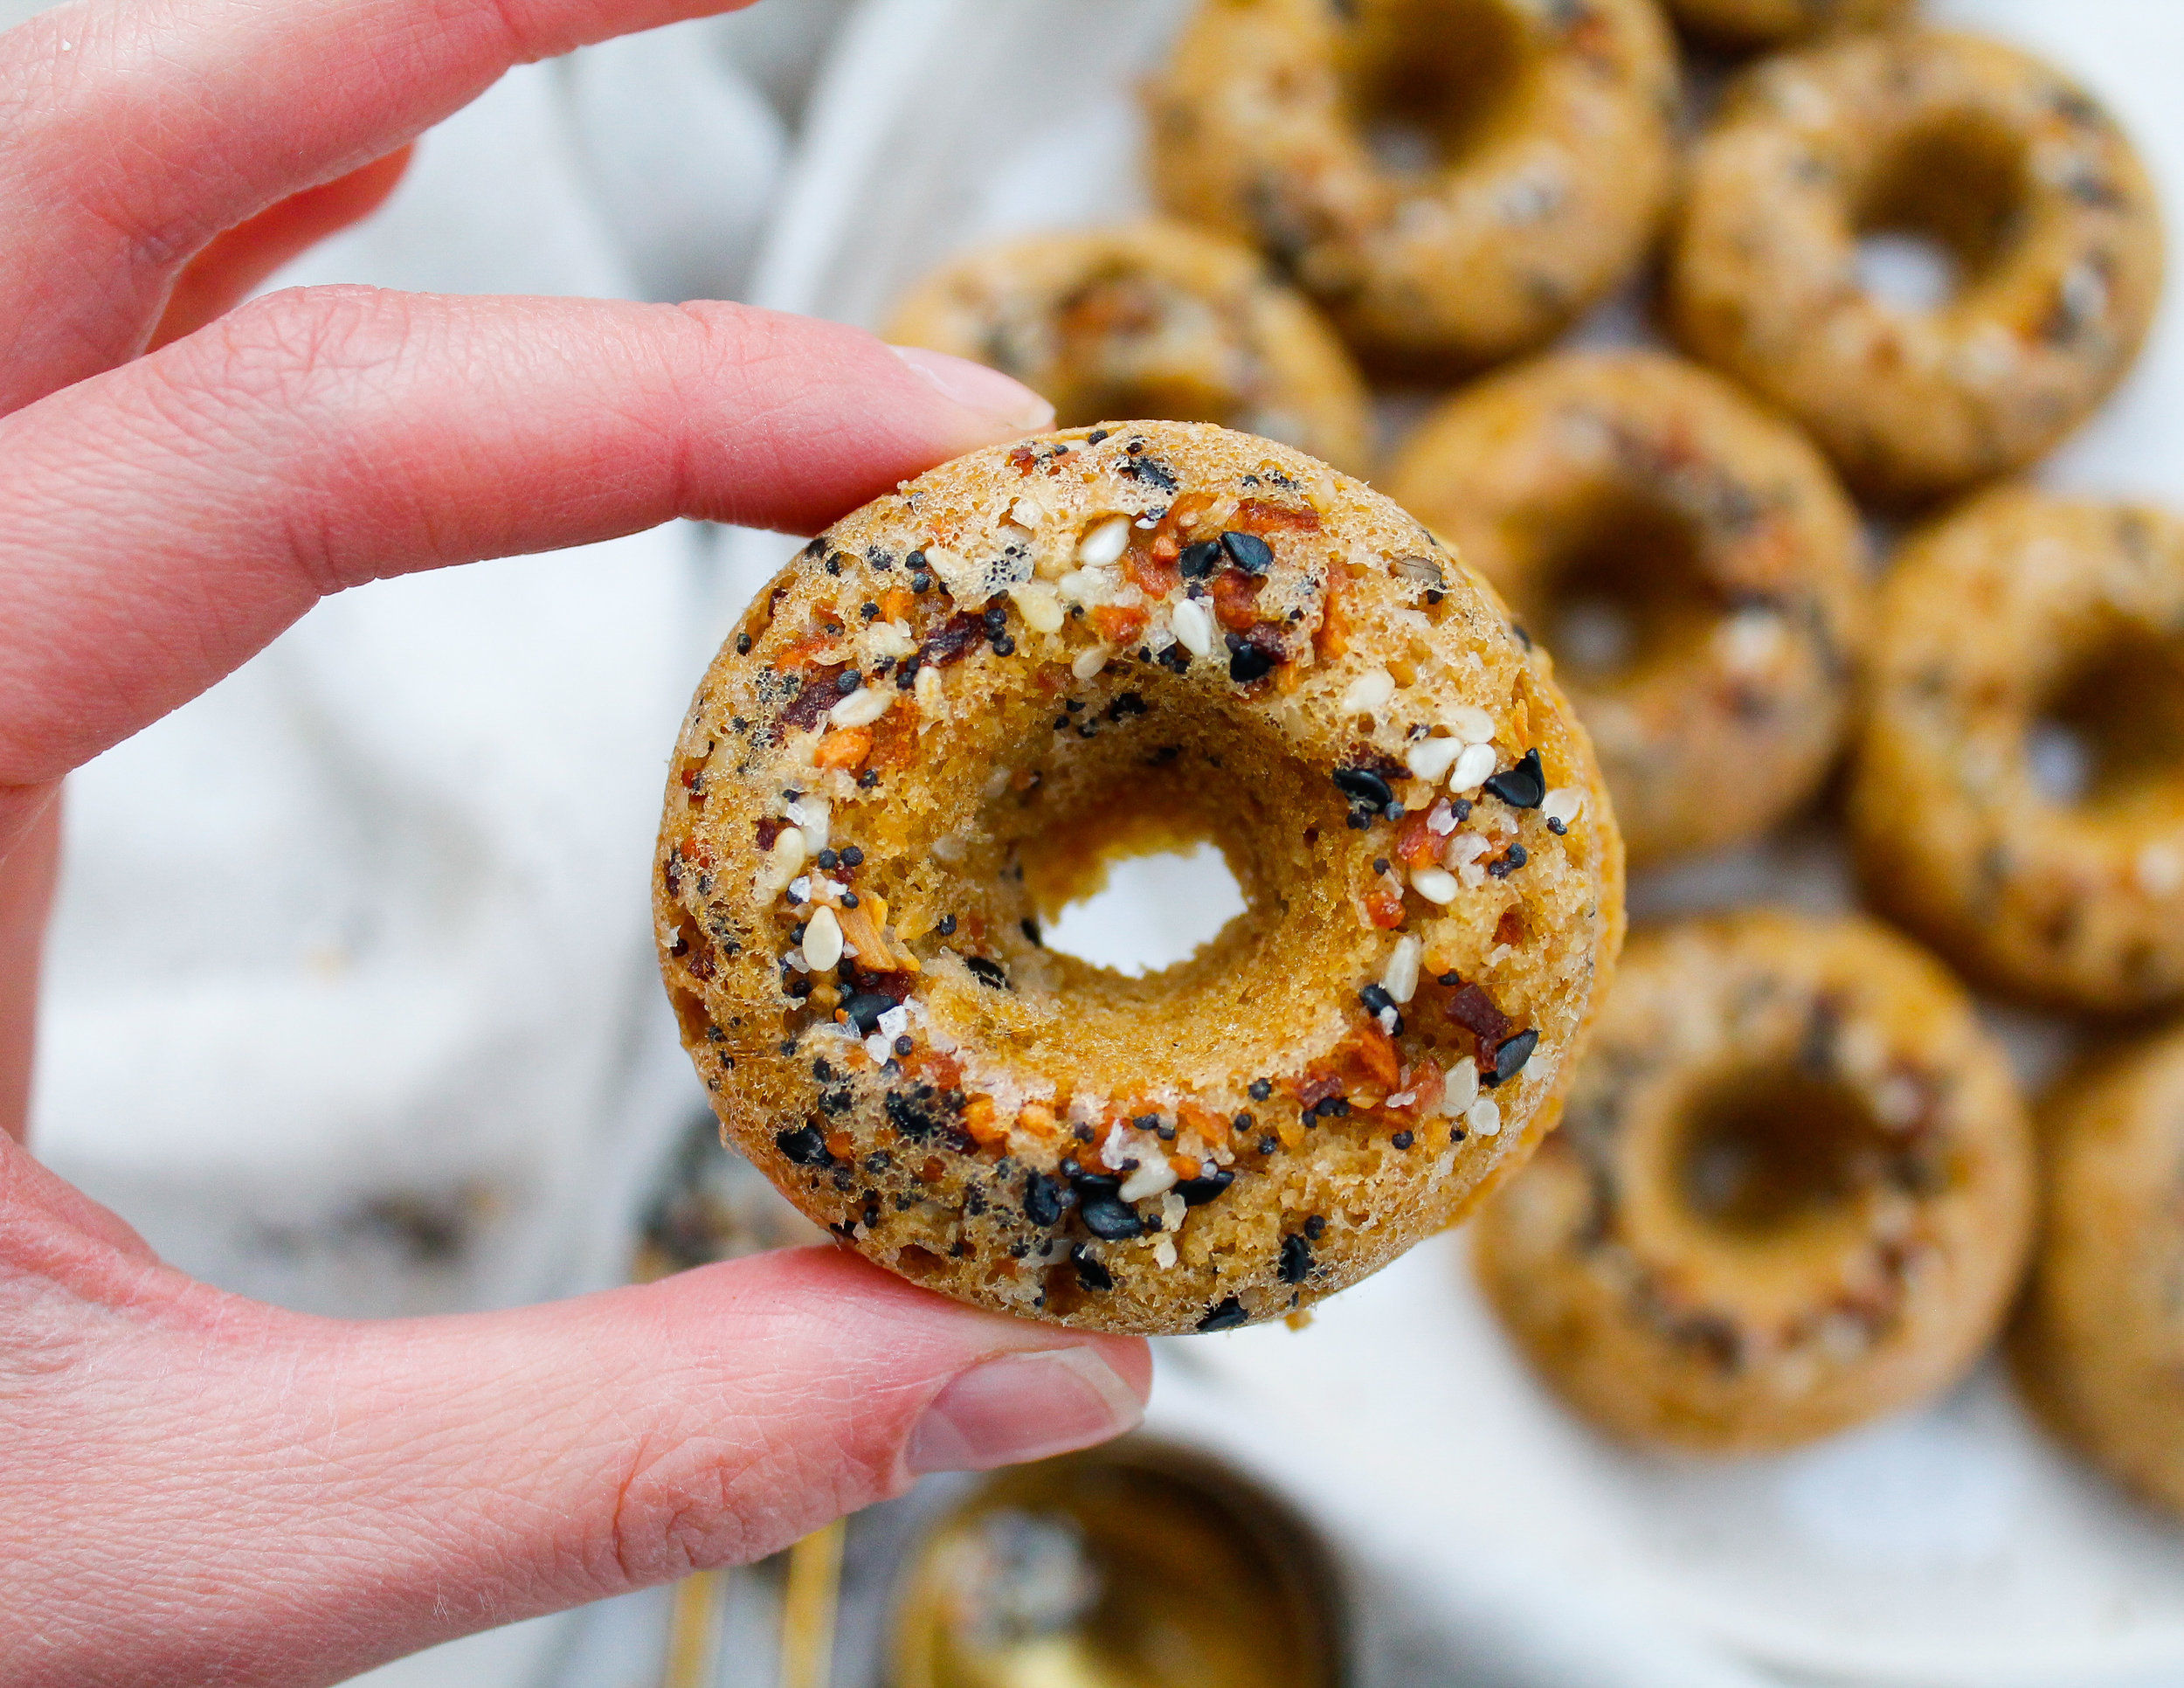 Mini Paleo Everything Bagels || These mini paleo bagels are perfect for your grain free bagel cravings! They're gluten free, dairy free, refined sugar free AND Specific Carbohydrate Diet friendly. Click through for the full recipe! || #paleobaking #paleobagels #specificcarbohydratediet #scddiet #everythingbagels || plentyandwell.com